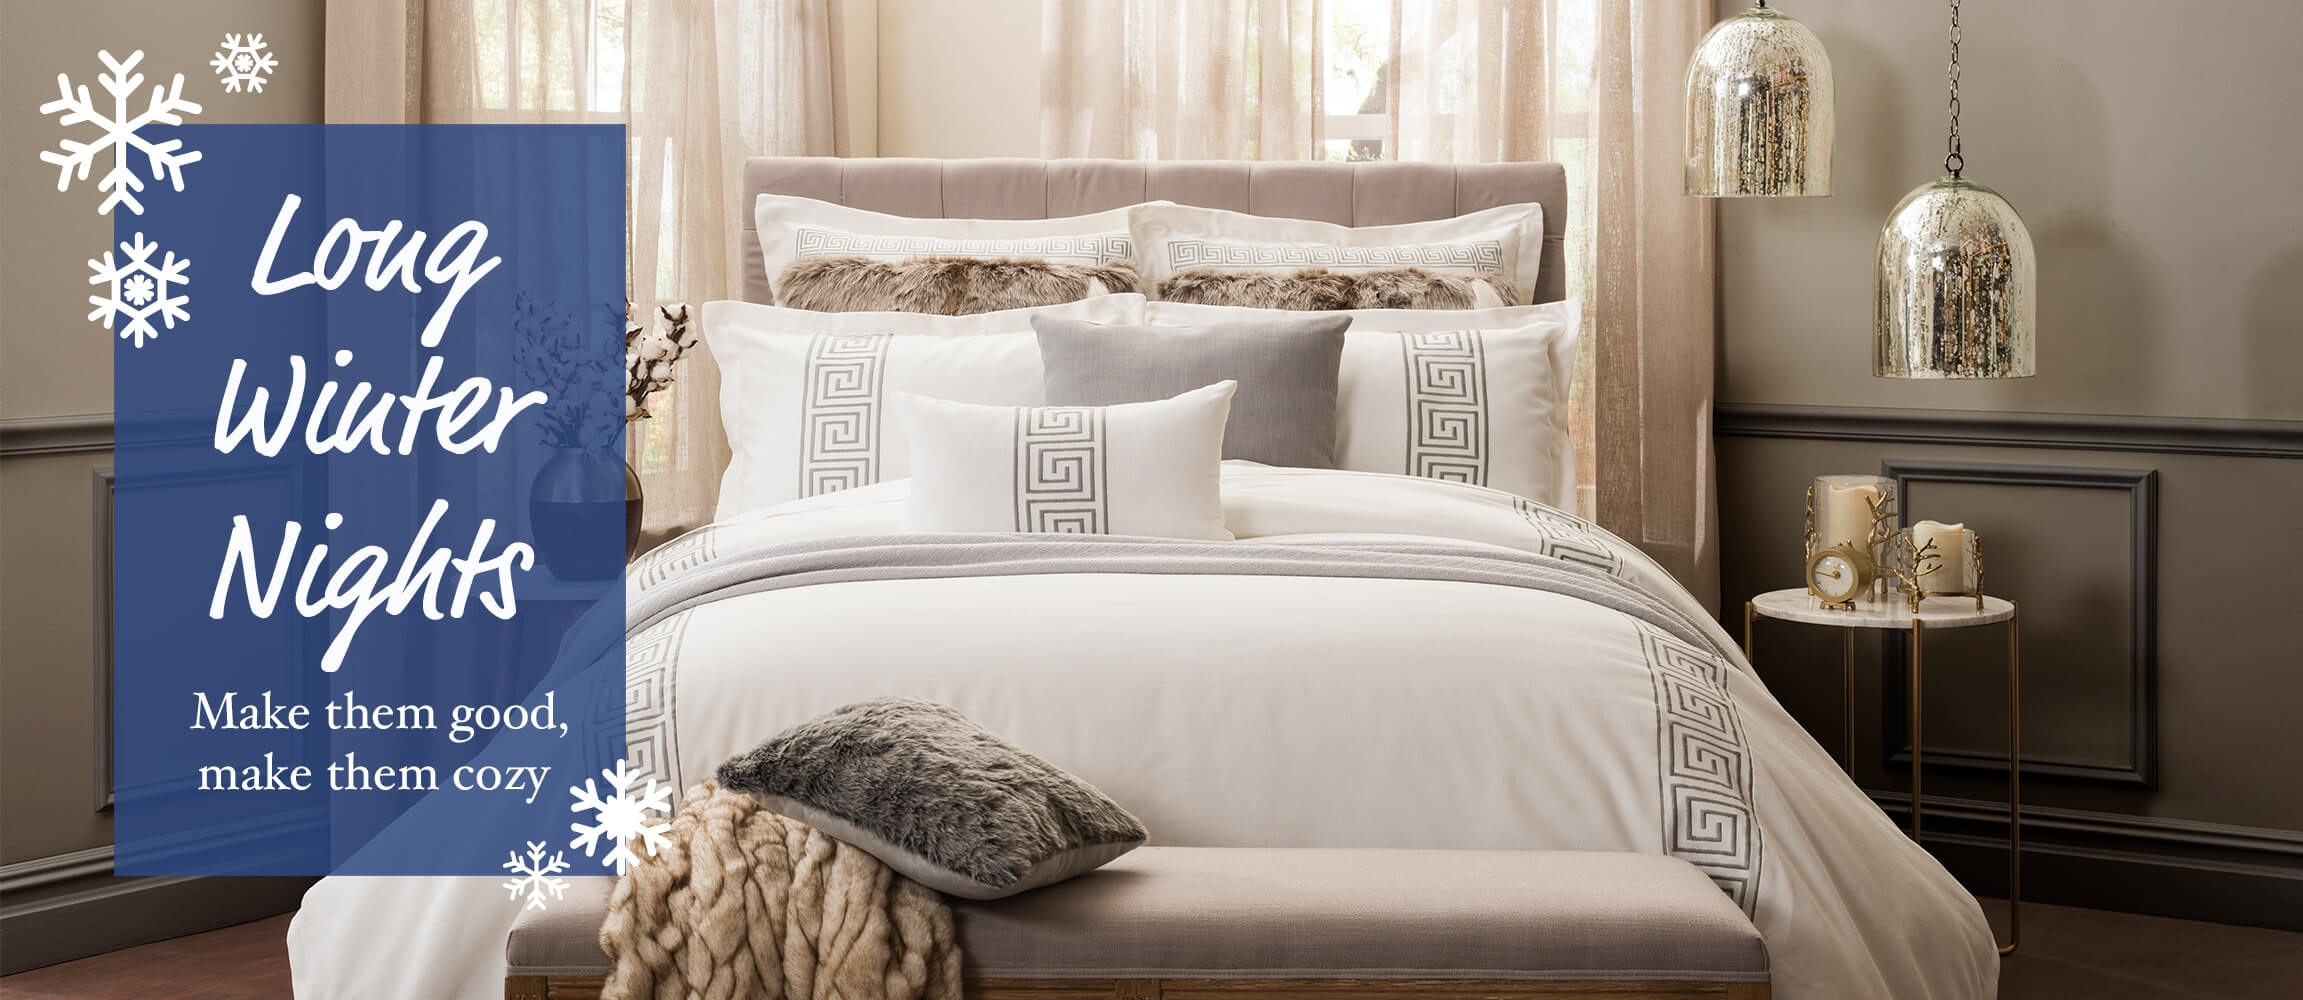 Shop Bedding  Satin Bedding Sheets Pillowcases